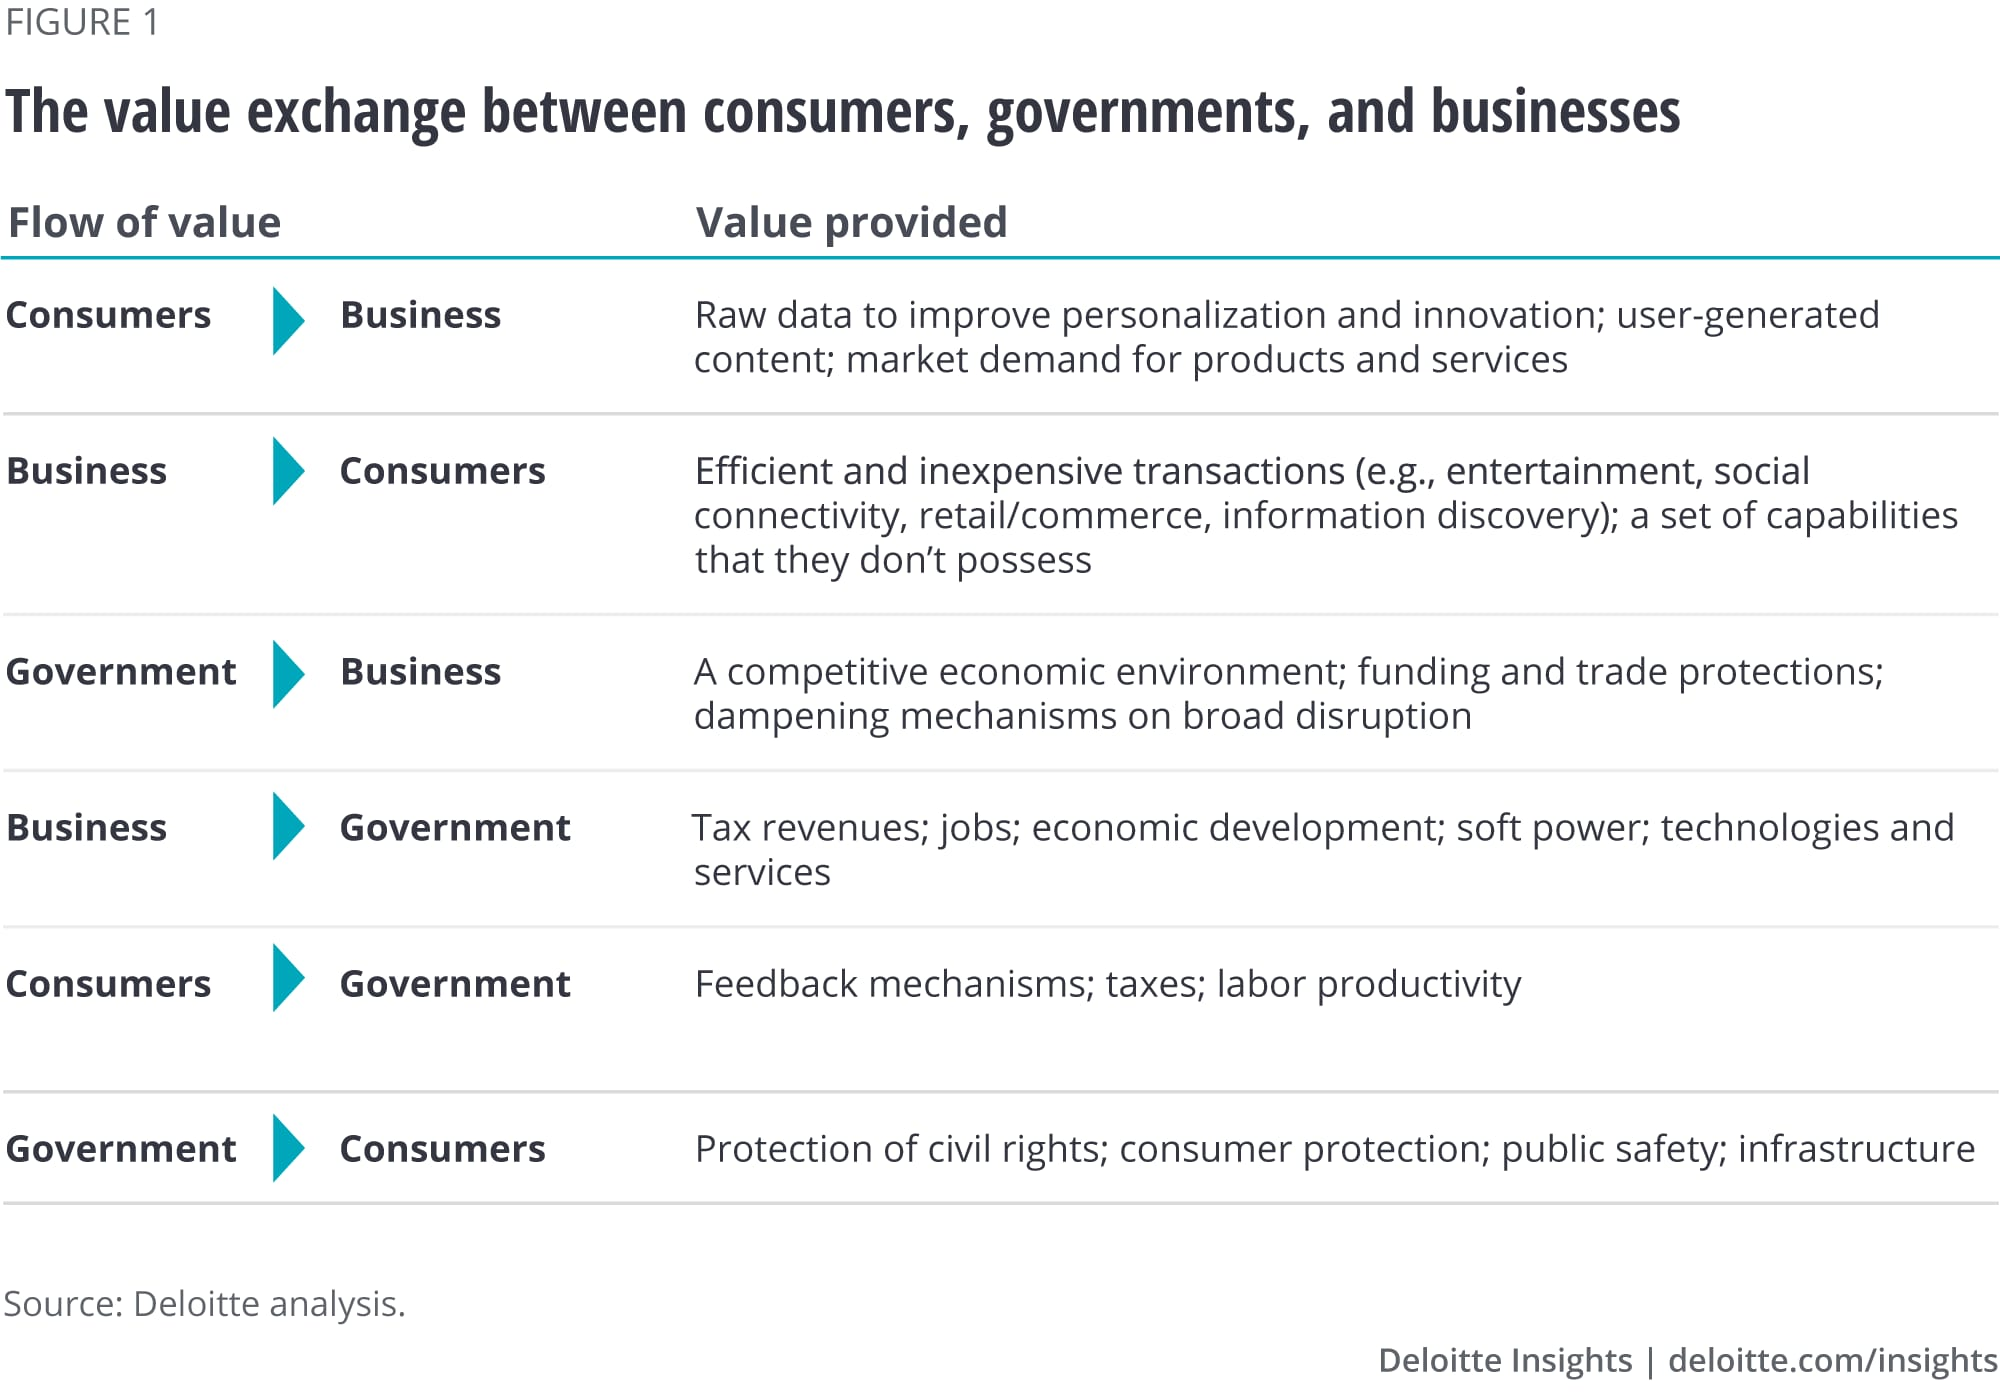 The value exchange between consumers, governments, and businesses